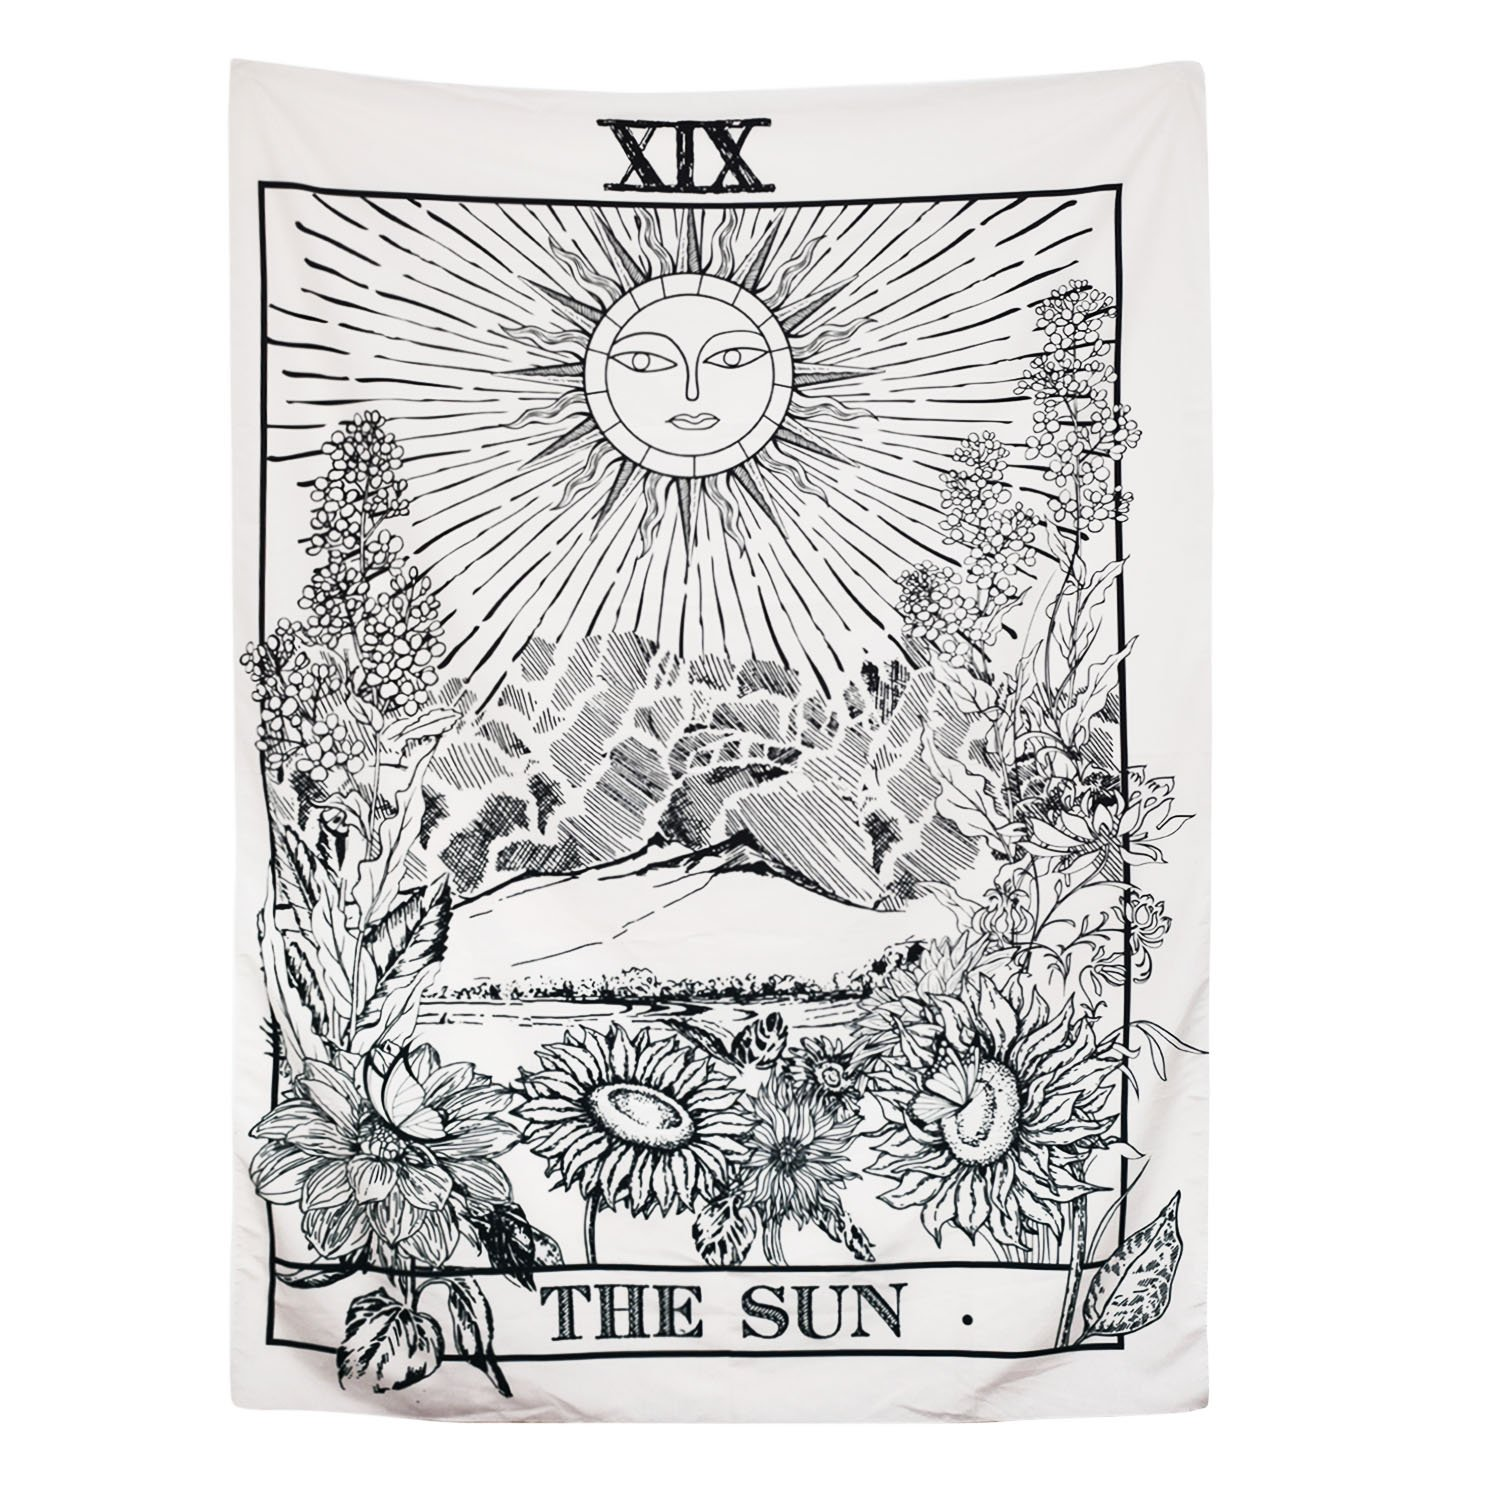 BLEUM CADE Tarot Tapestry The Moon The Star The Sun Tapestry Medieval Europe Divination Tapestry Wall Hanging Tapestries Mysterious Wall Tapestry for Home Decor (The Sun, 70x92 Inches)